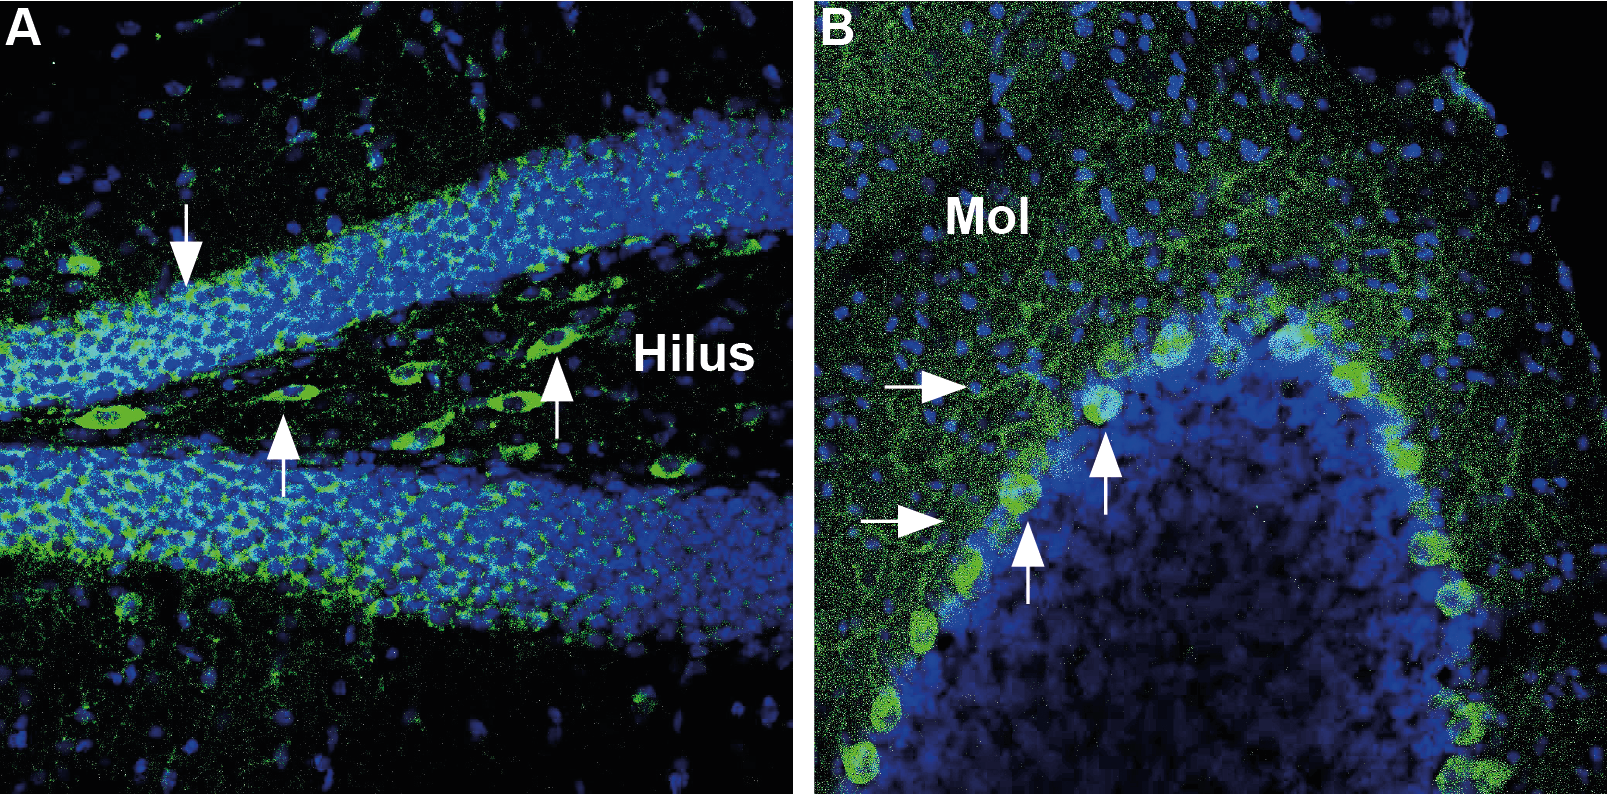 Expression of Glucose transporter 3 in mouse hippocampus and cerebellum